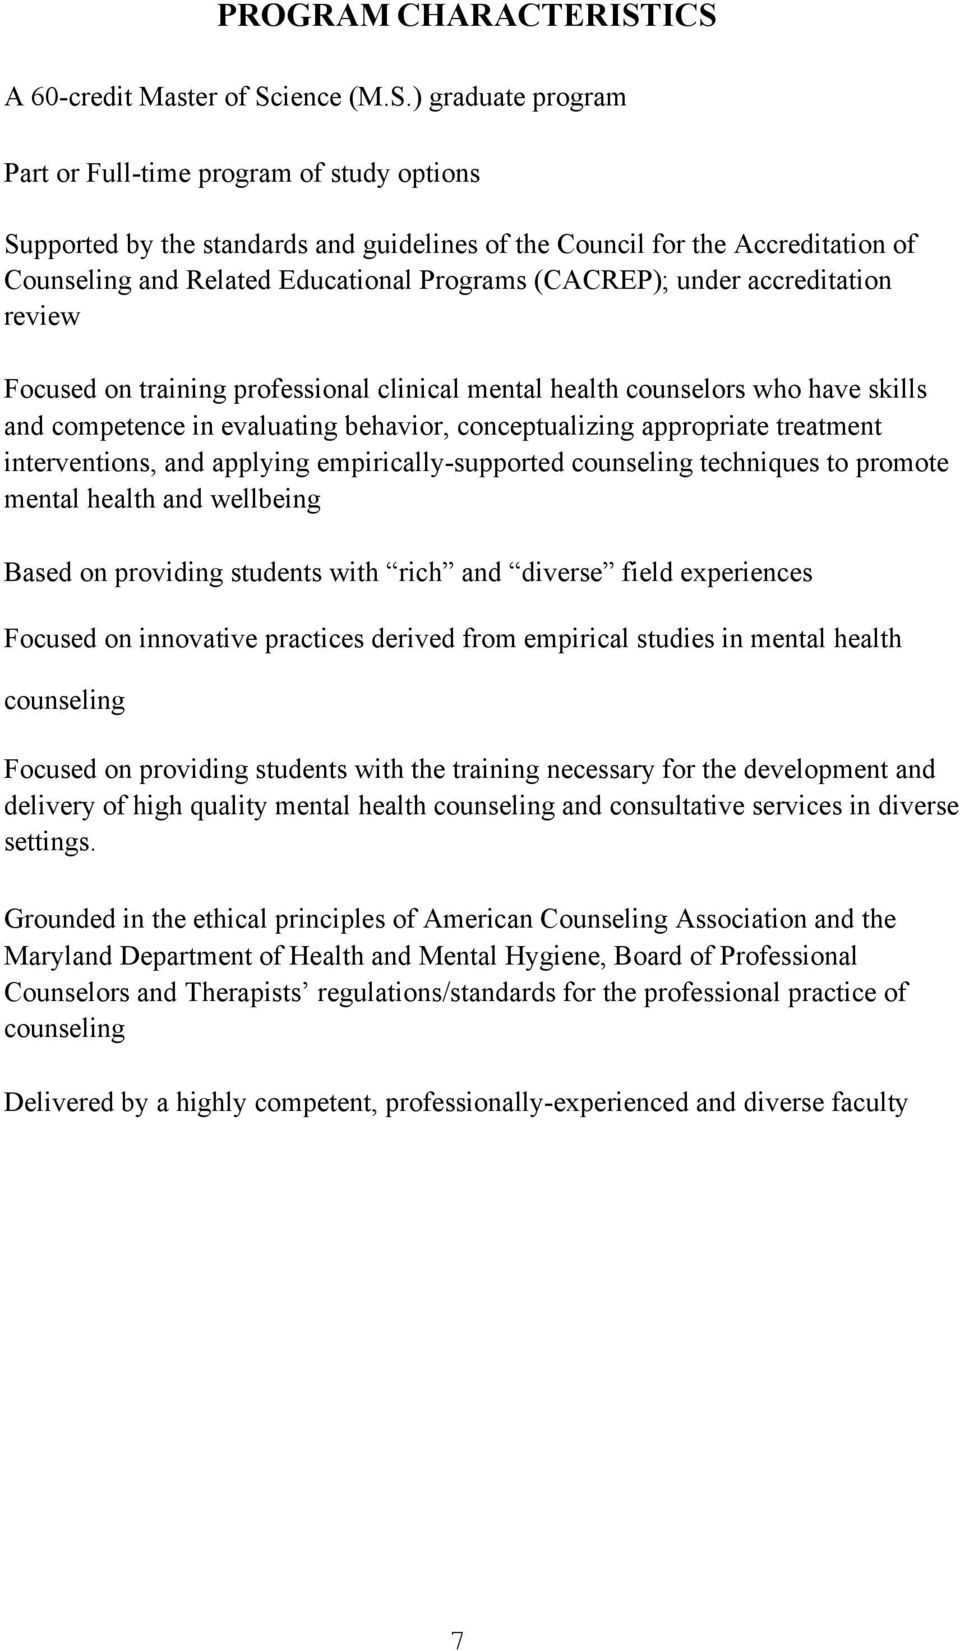 Related Educational Programs (CACREP); under accreditation review Focused on training professional clinical mental health counselors who have skills and competence in evaluating behavior,